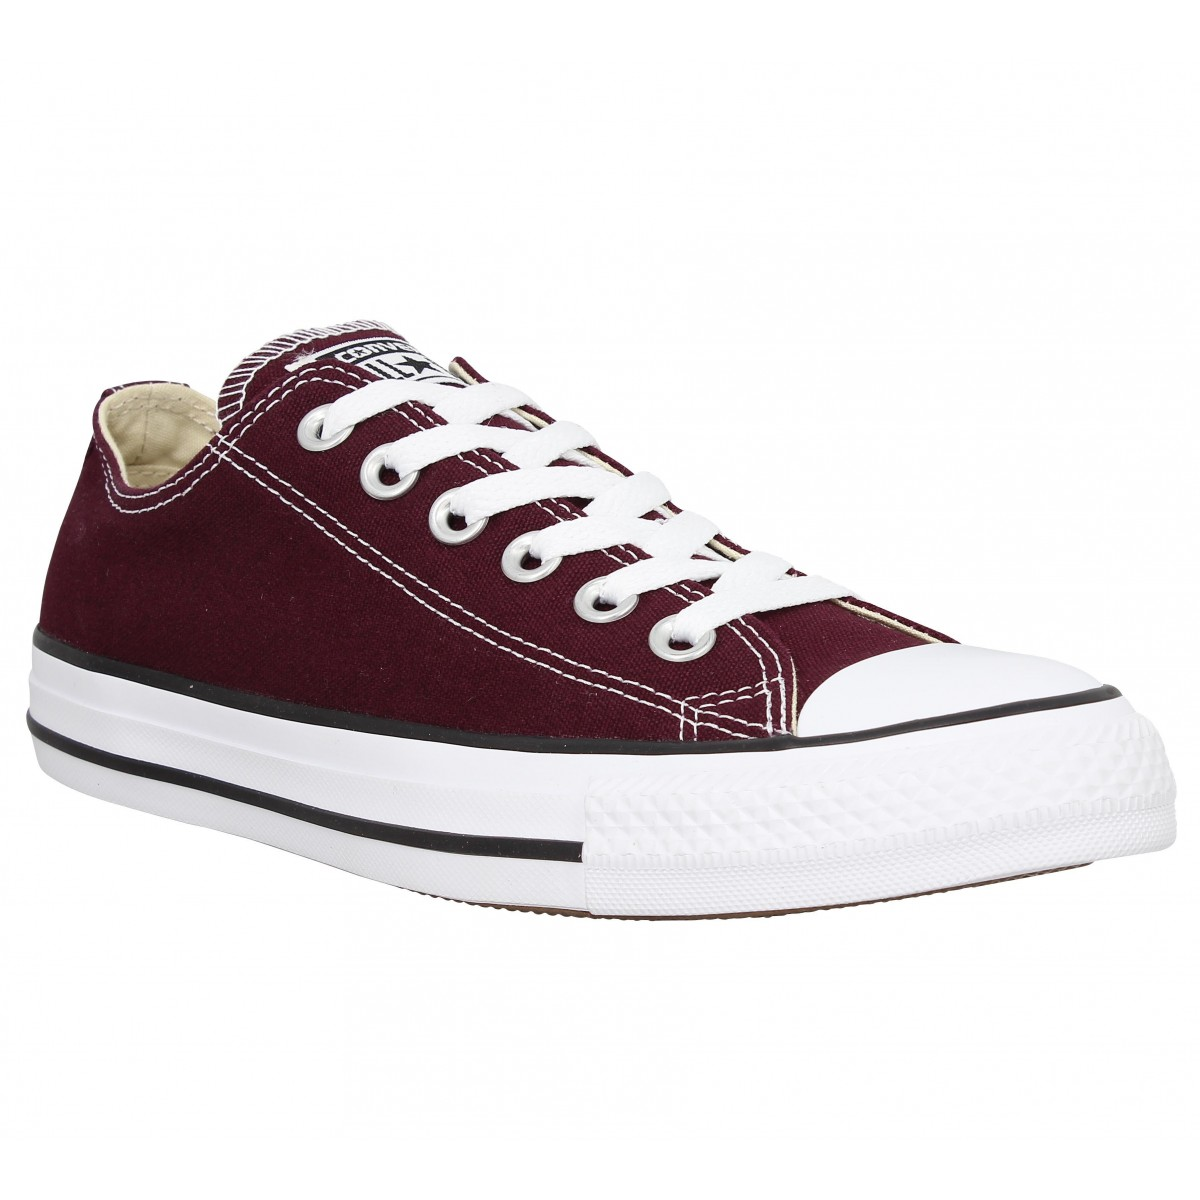 Baskets CONVERSE Chuck Taylor All Star toile Femme Sangria